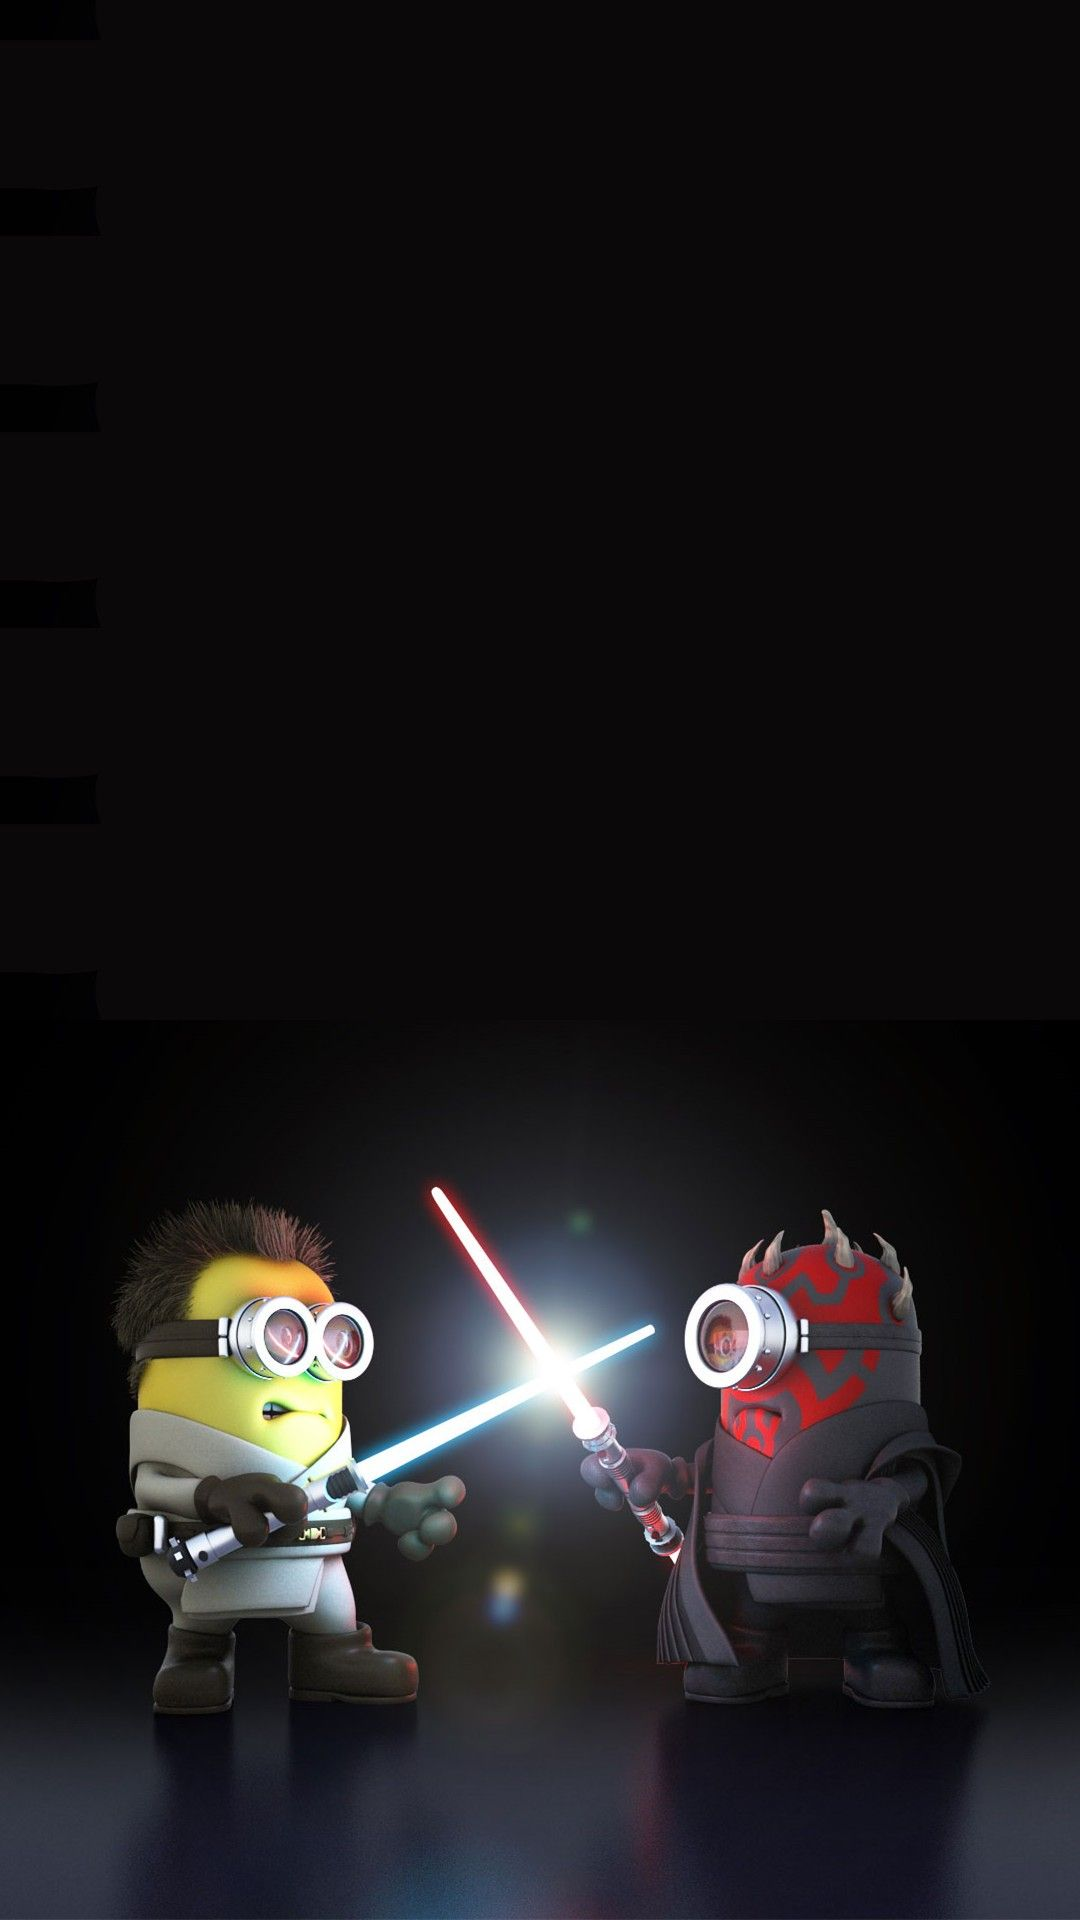 Papier Peint Minions 2014 Awesome Despicable Me Inspired Minions Star Wars